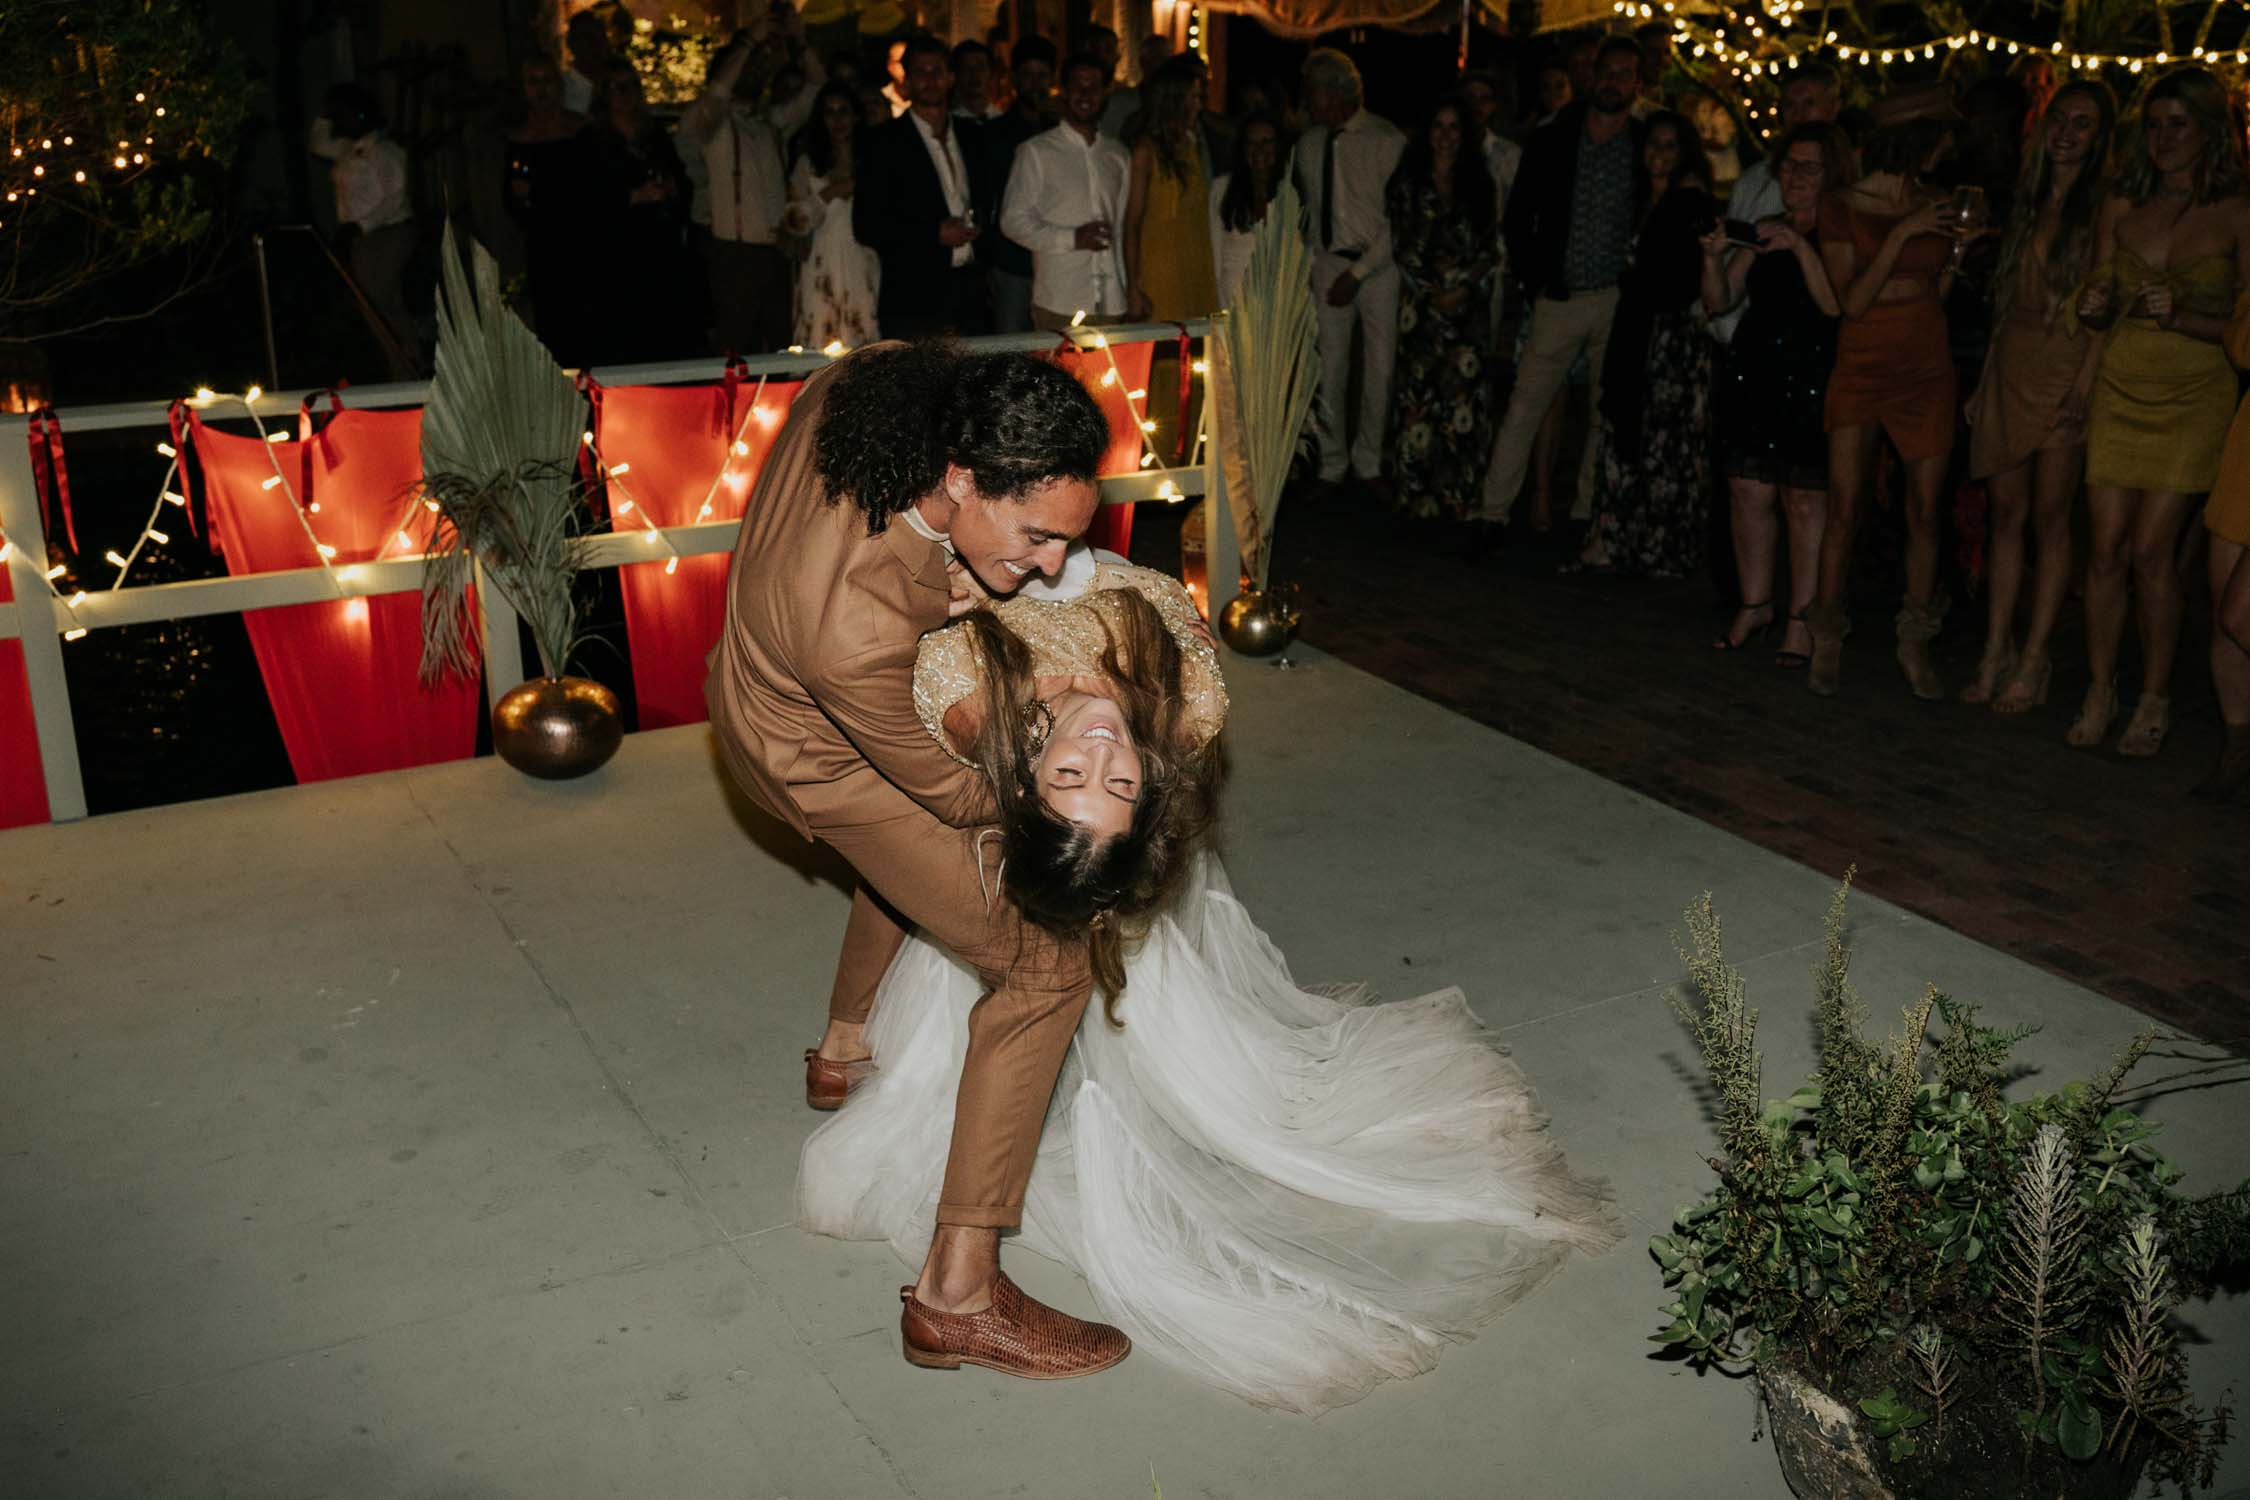 Grooms dips bride and spins her around during epic first dance at Emily Moon